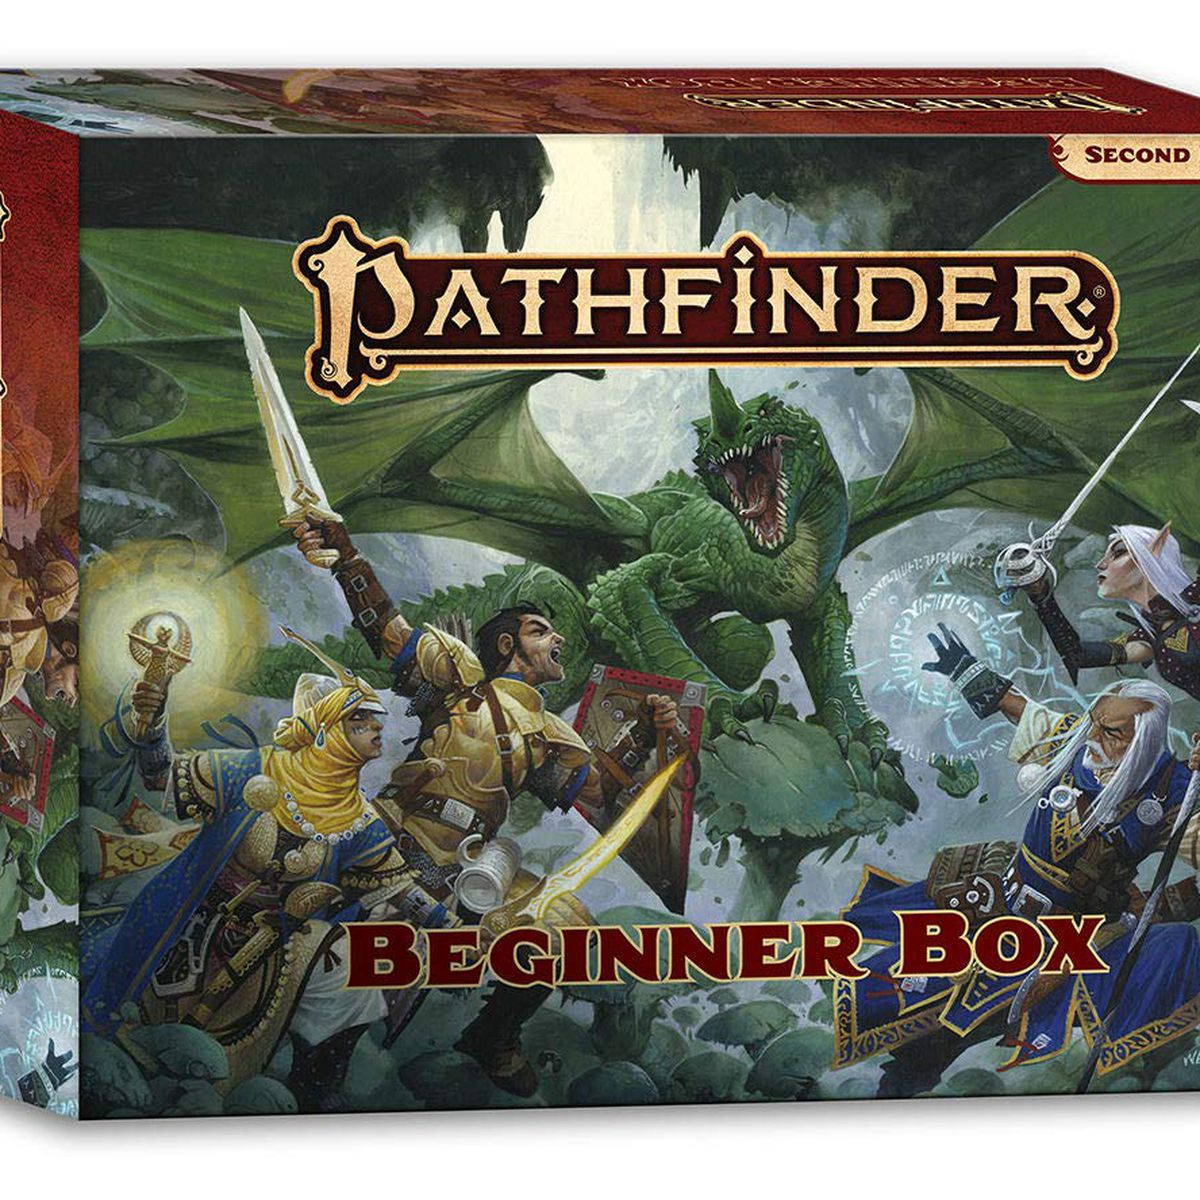 Pathfinder's new Beginner Box is designed for players with zero experience